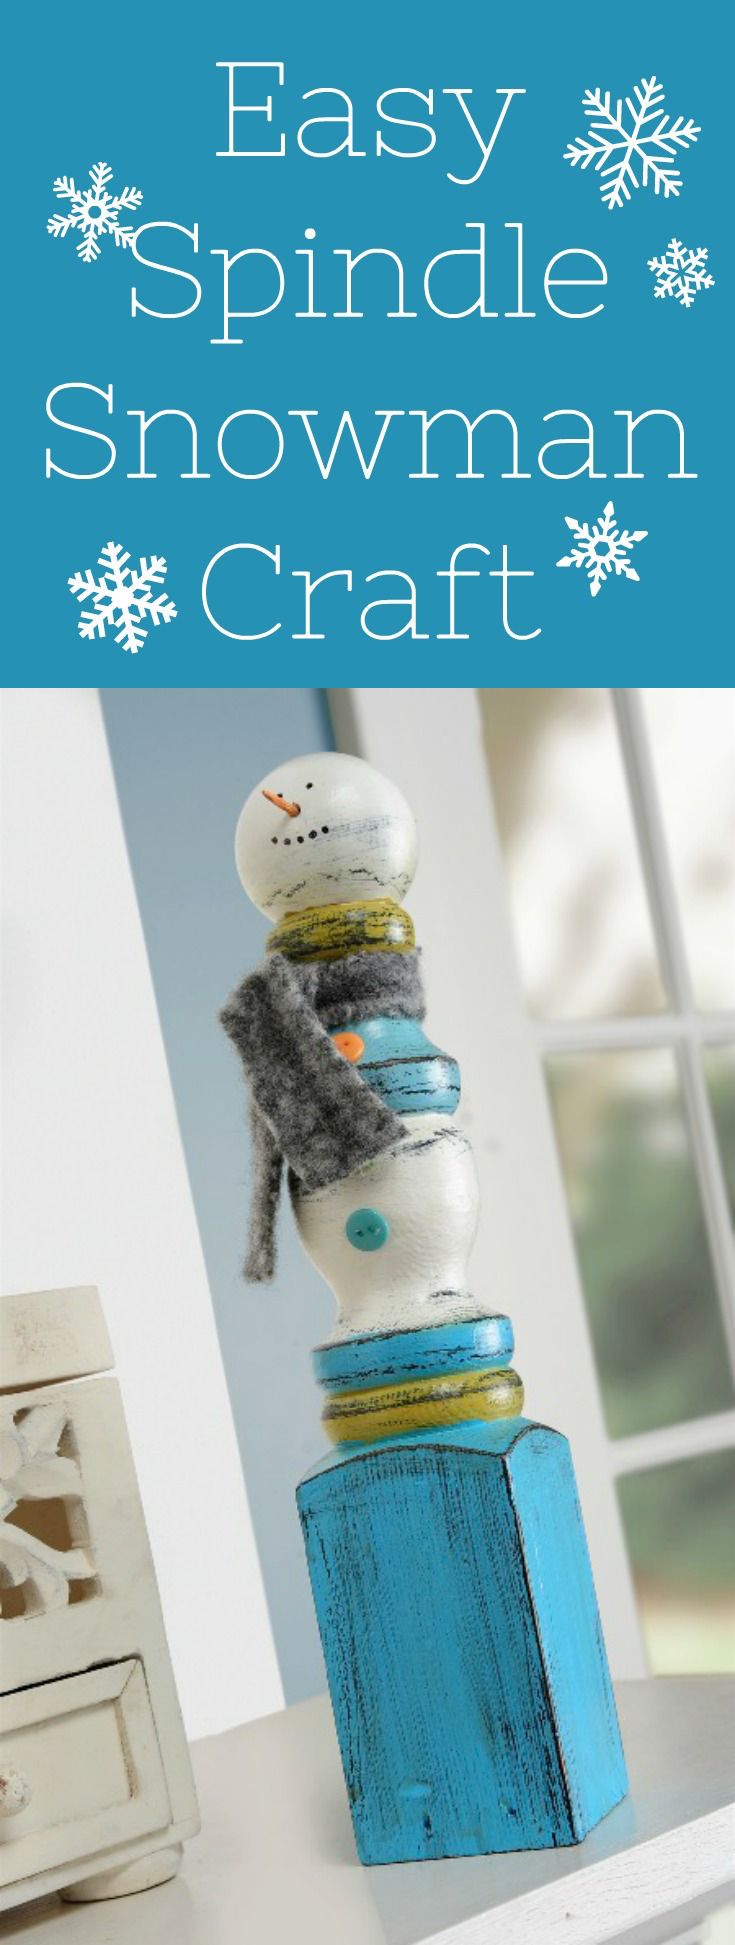 34+ Christmas wood crafts for adults information